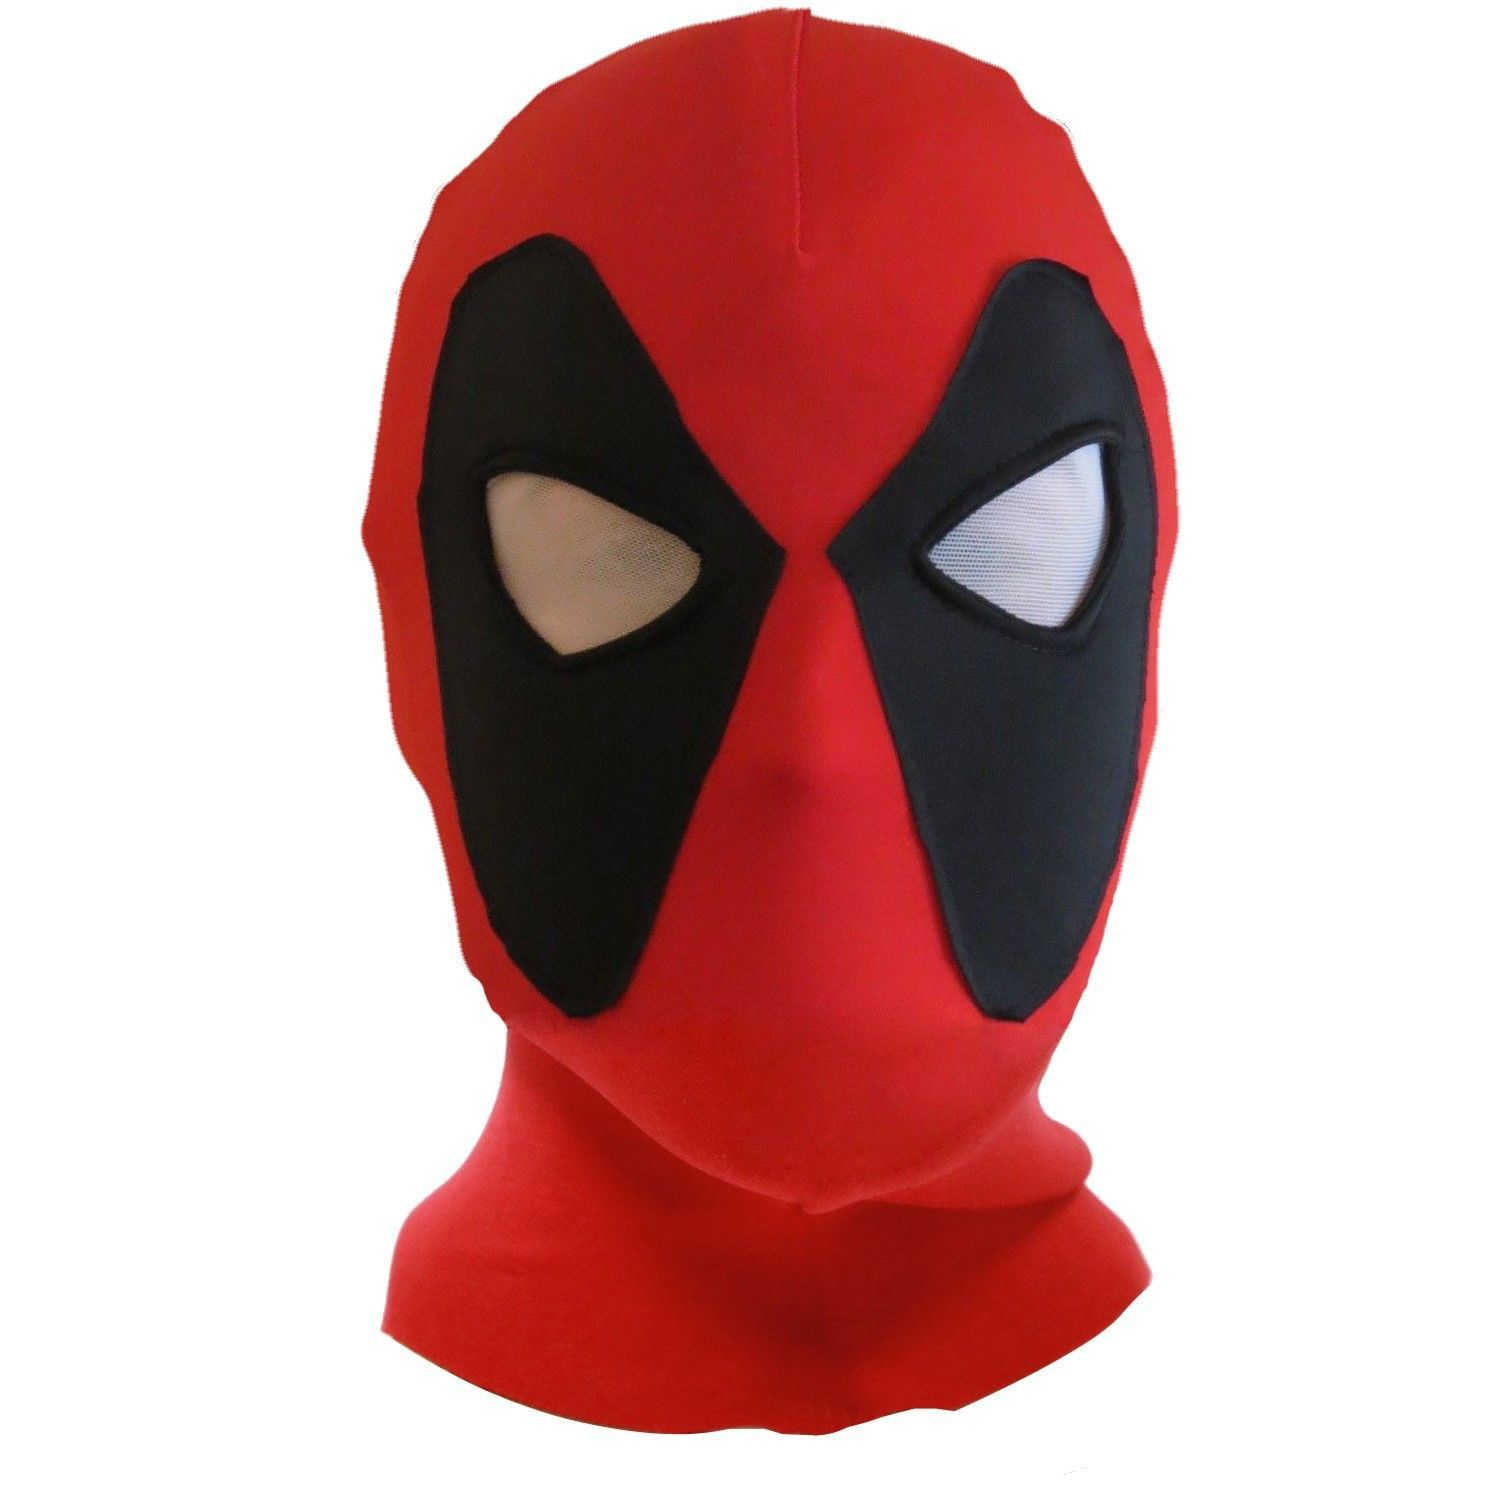 Free shipping] Masque Halloween costume: mask deadpool cosplay ...